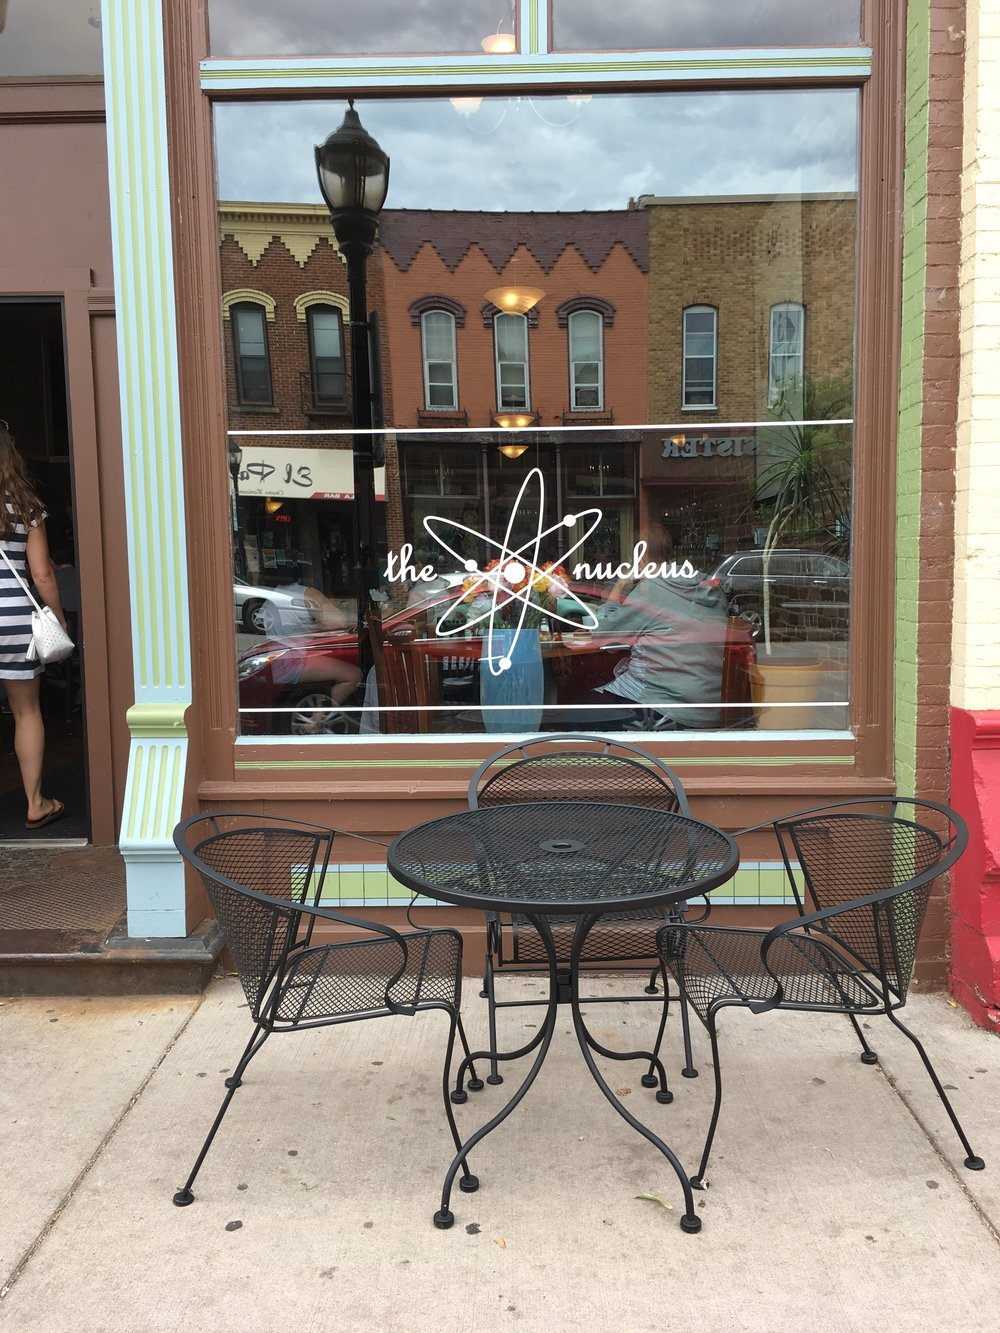 Nucleus Cafe in Eau Claire, Wisconsin